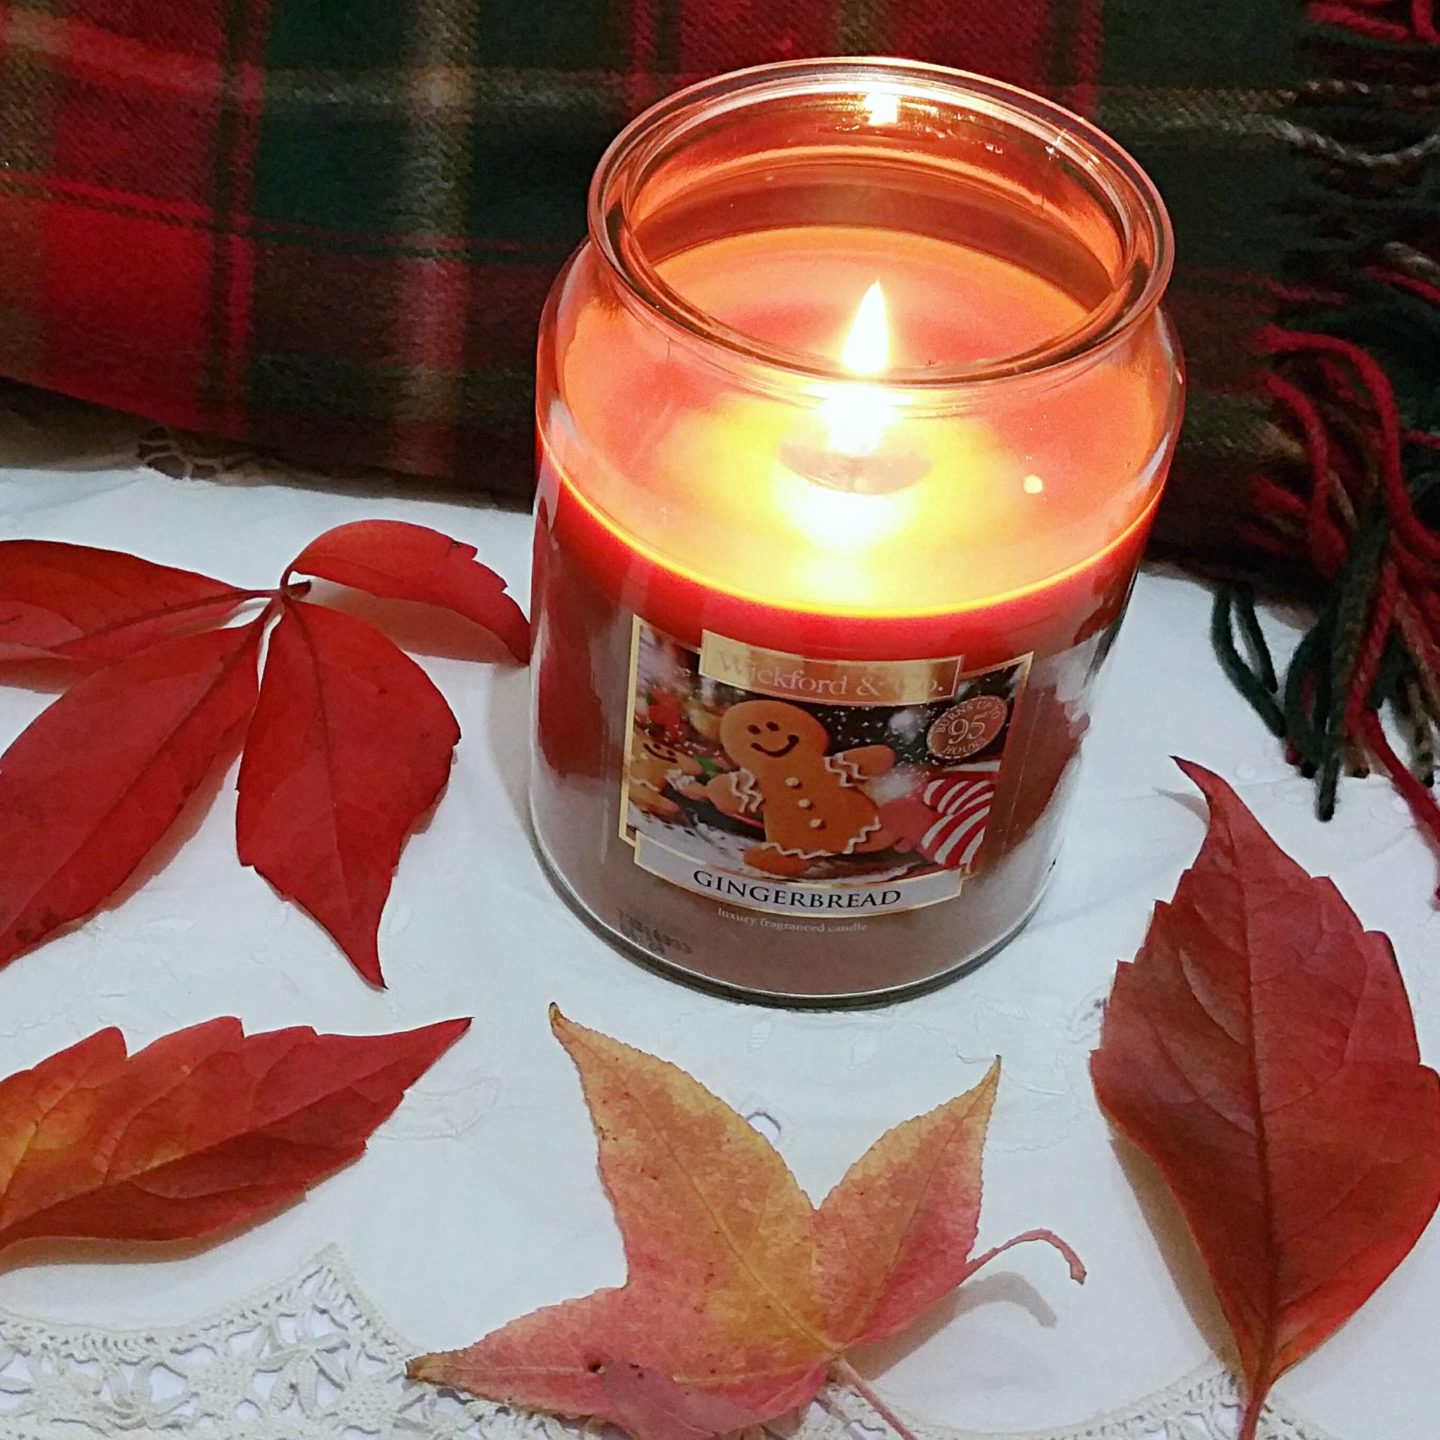 A lit candle surrounded by autumn leaves